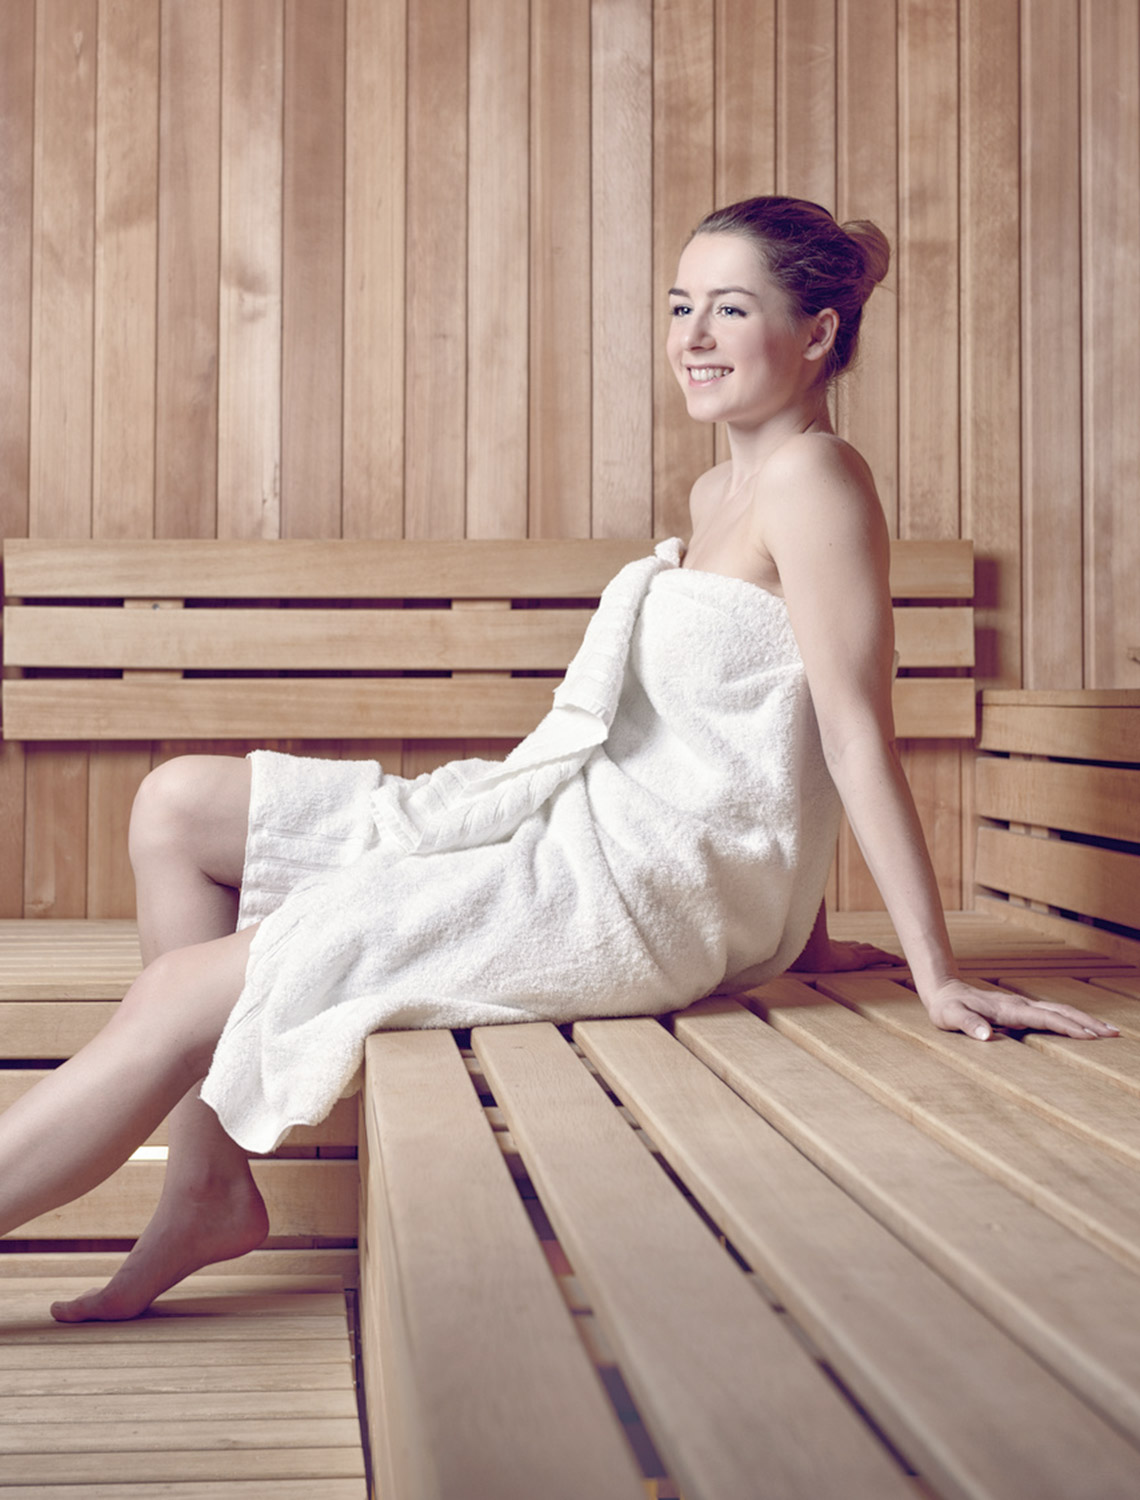 Sauna in the spa - recover and relax